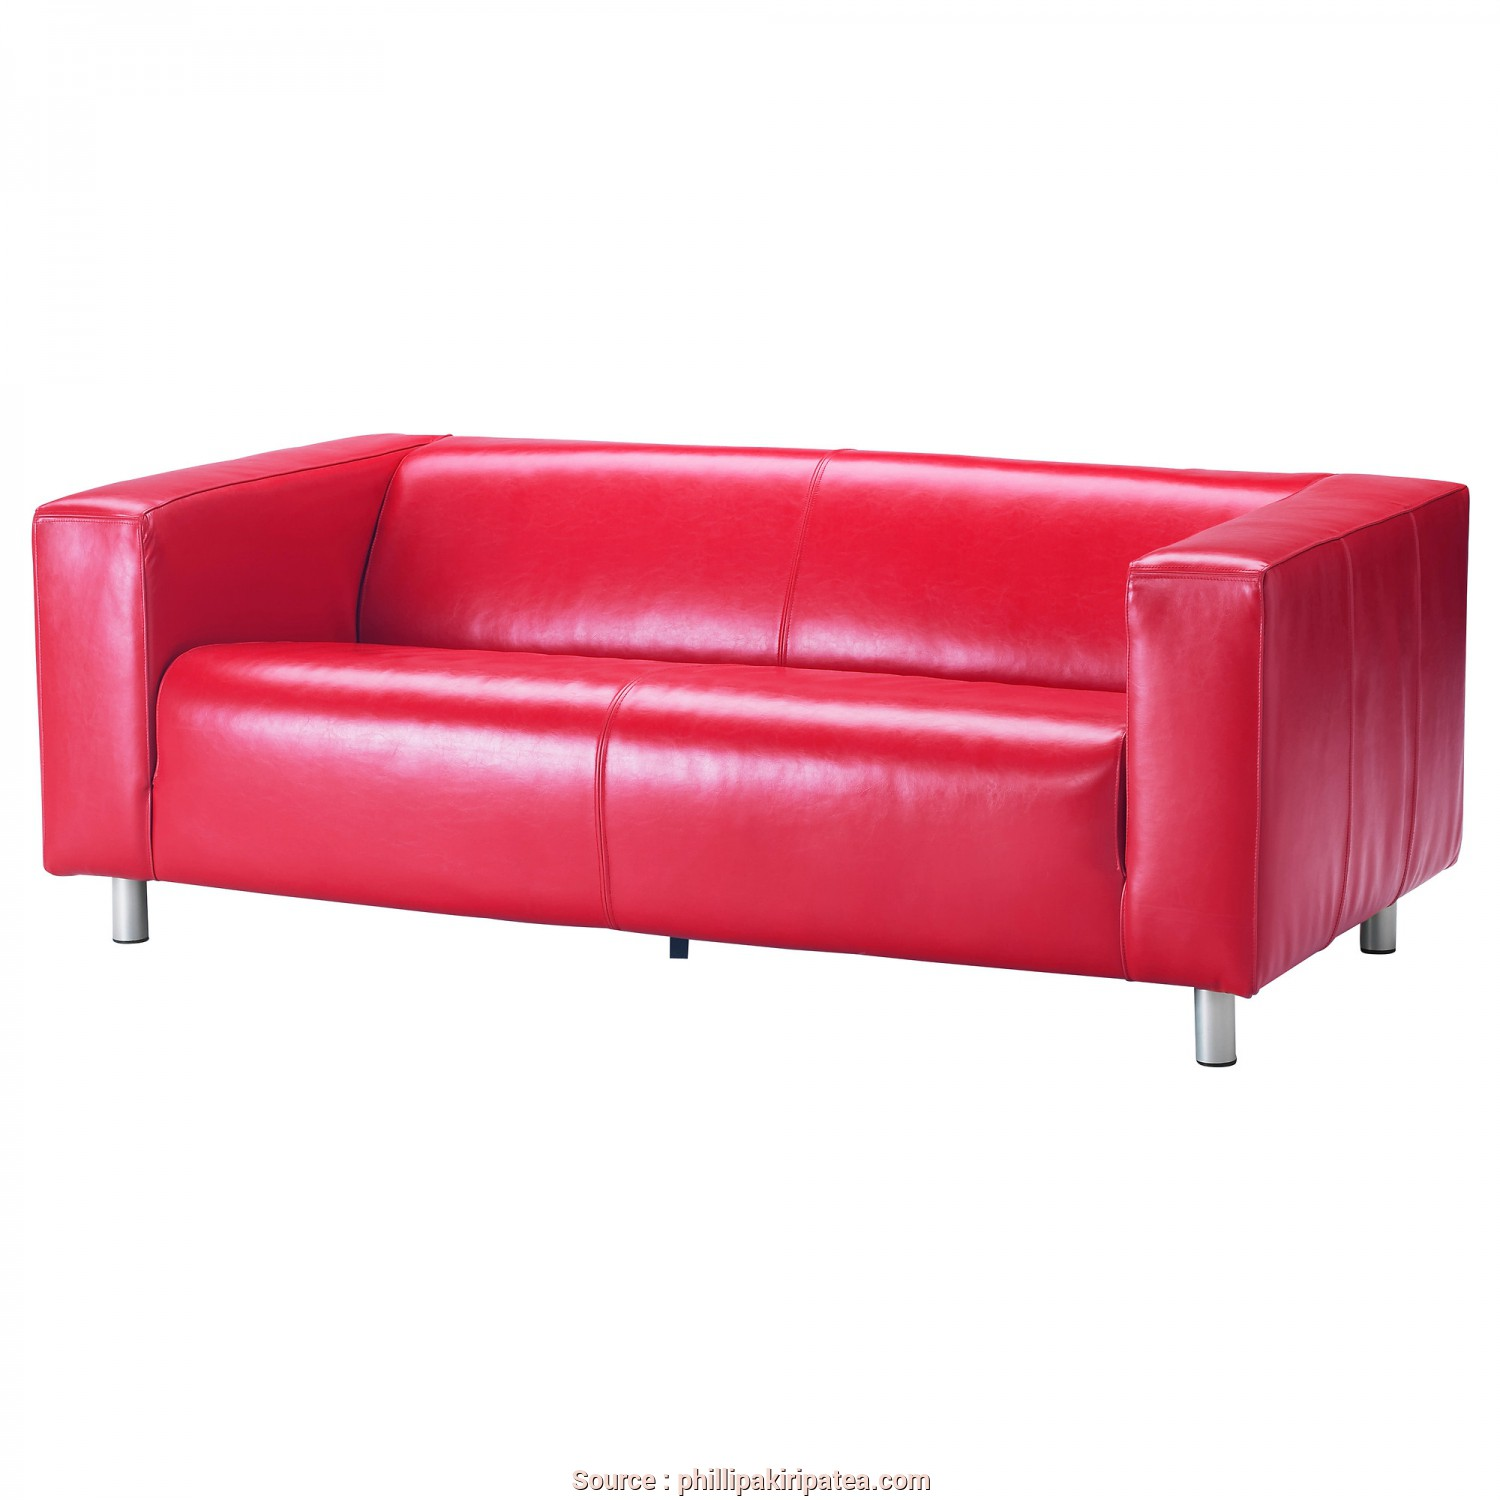 Ikea Klippan Sofa Leather, Minimalista Furniture: Bring Depth, Modernity To Your Contemporary Living